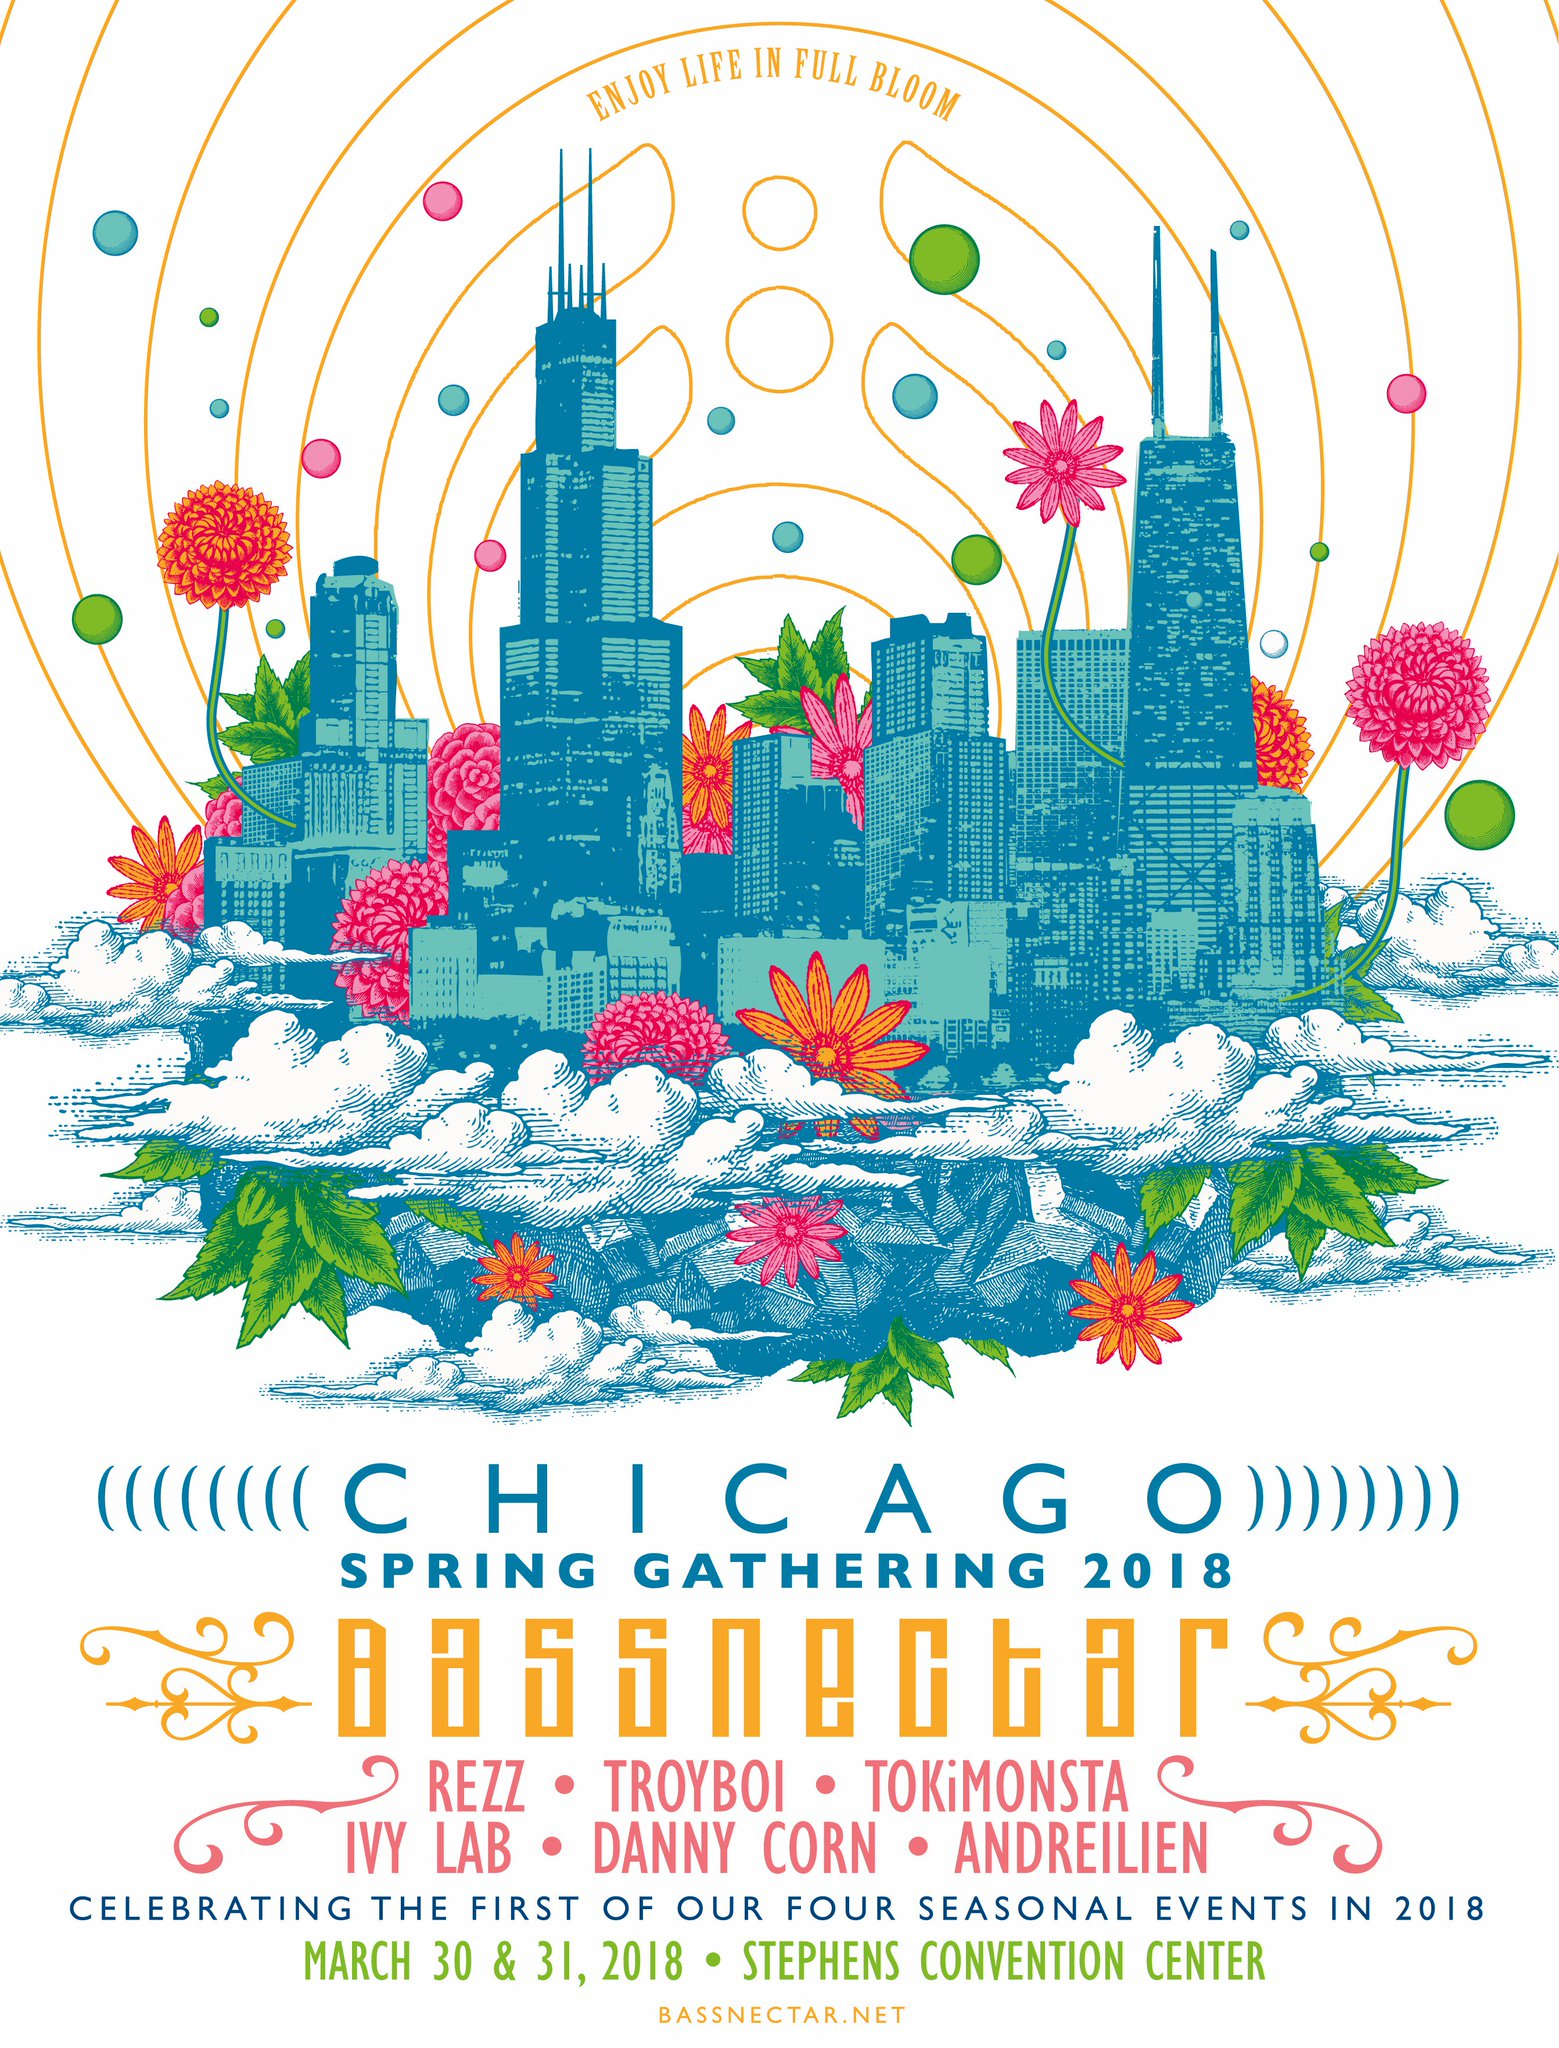 Bassnectar reveals first of four 2018 seasonal gatherings in ChicagoDOh C74UIAAkujB.jpg:large